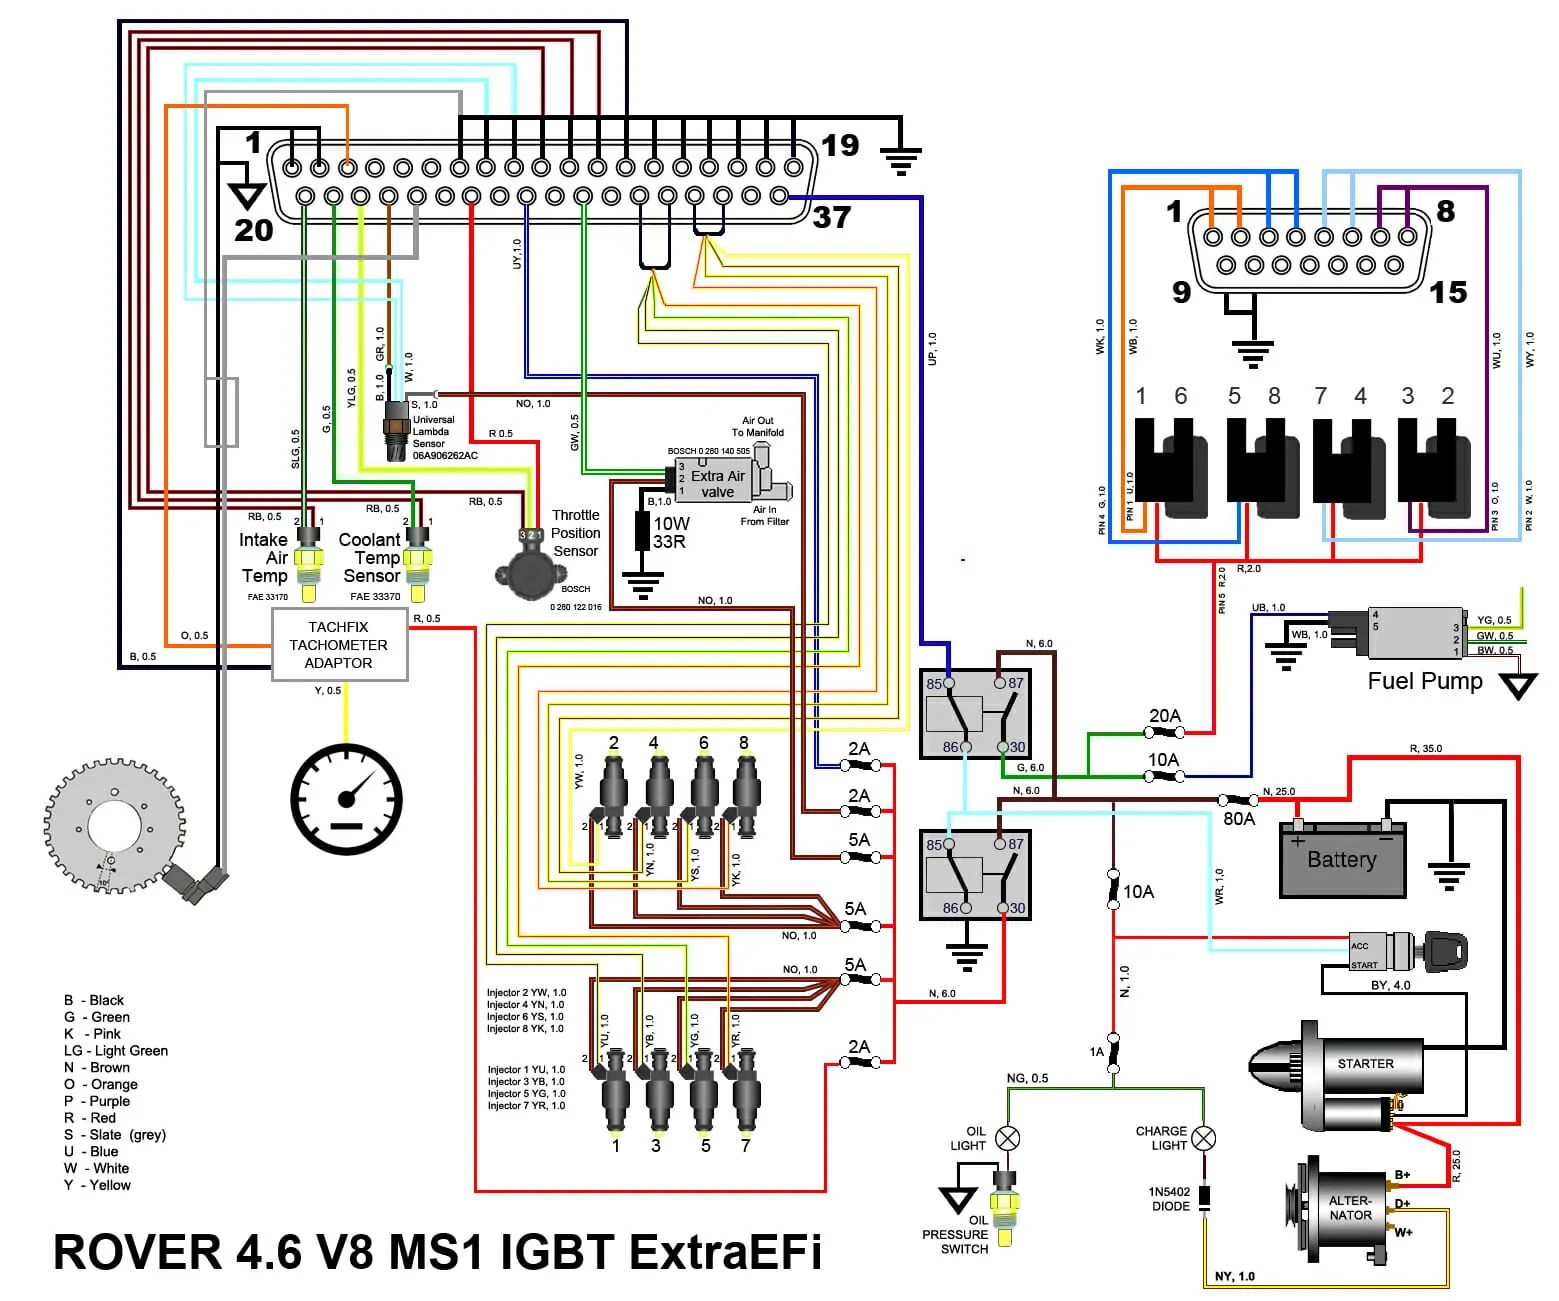 hight resolution of rover v8 megasquirt ms1 wiring diagram